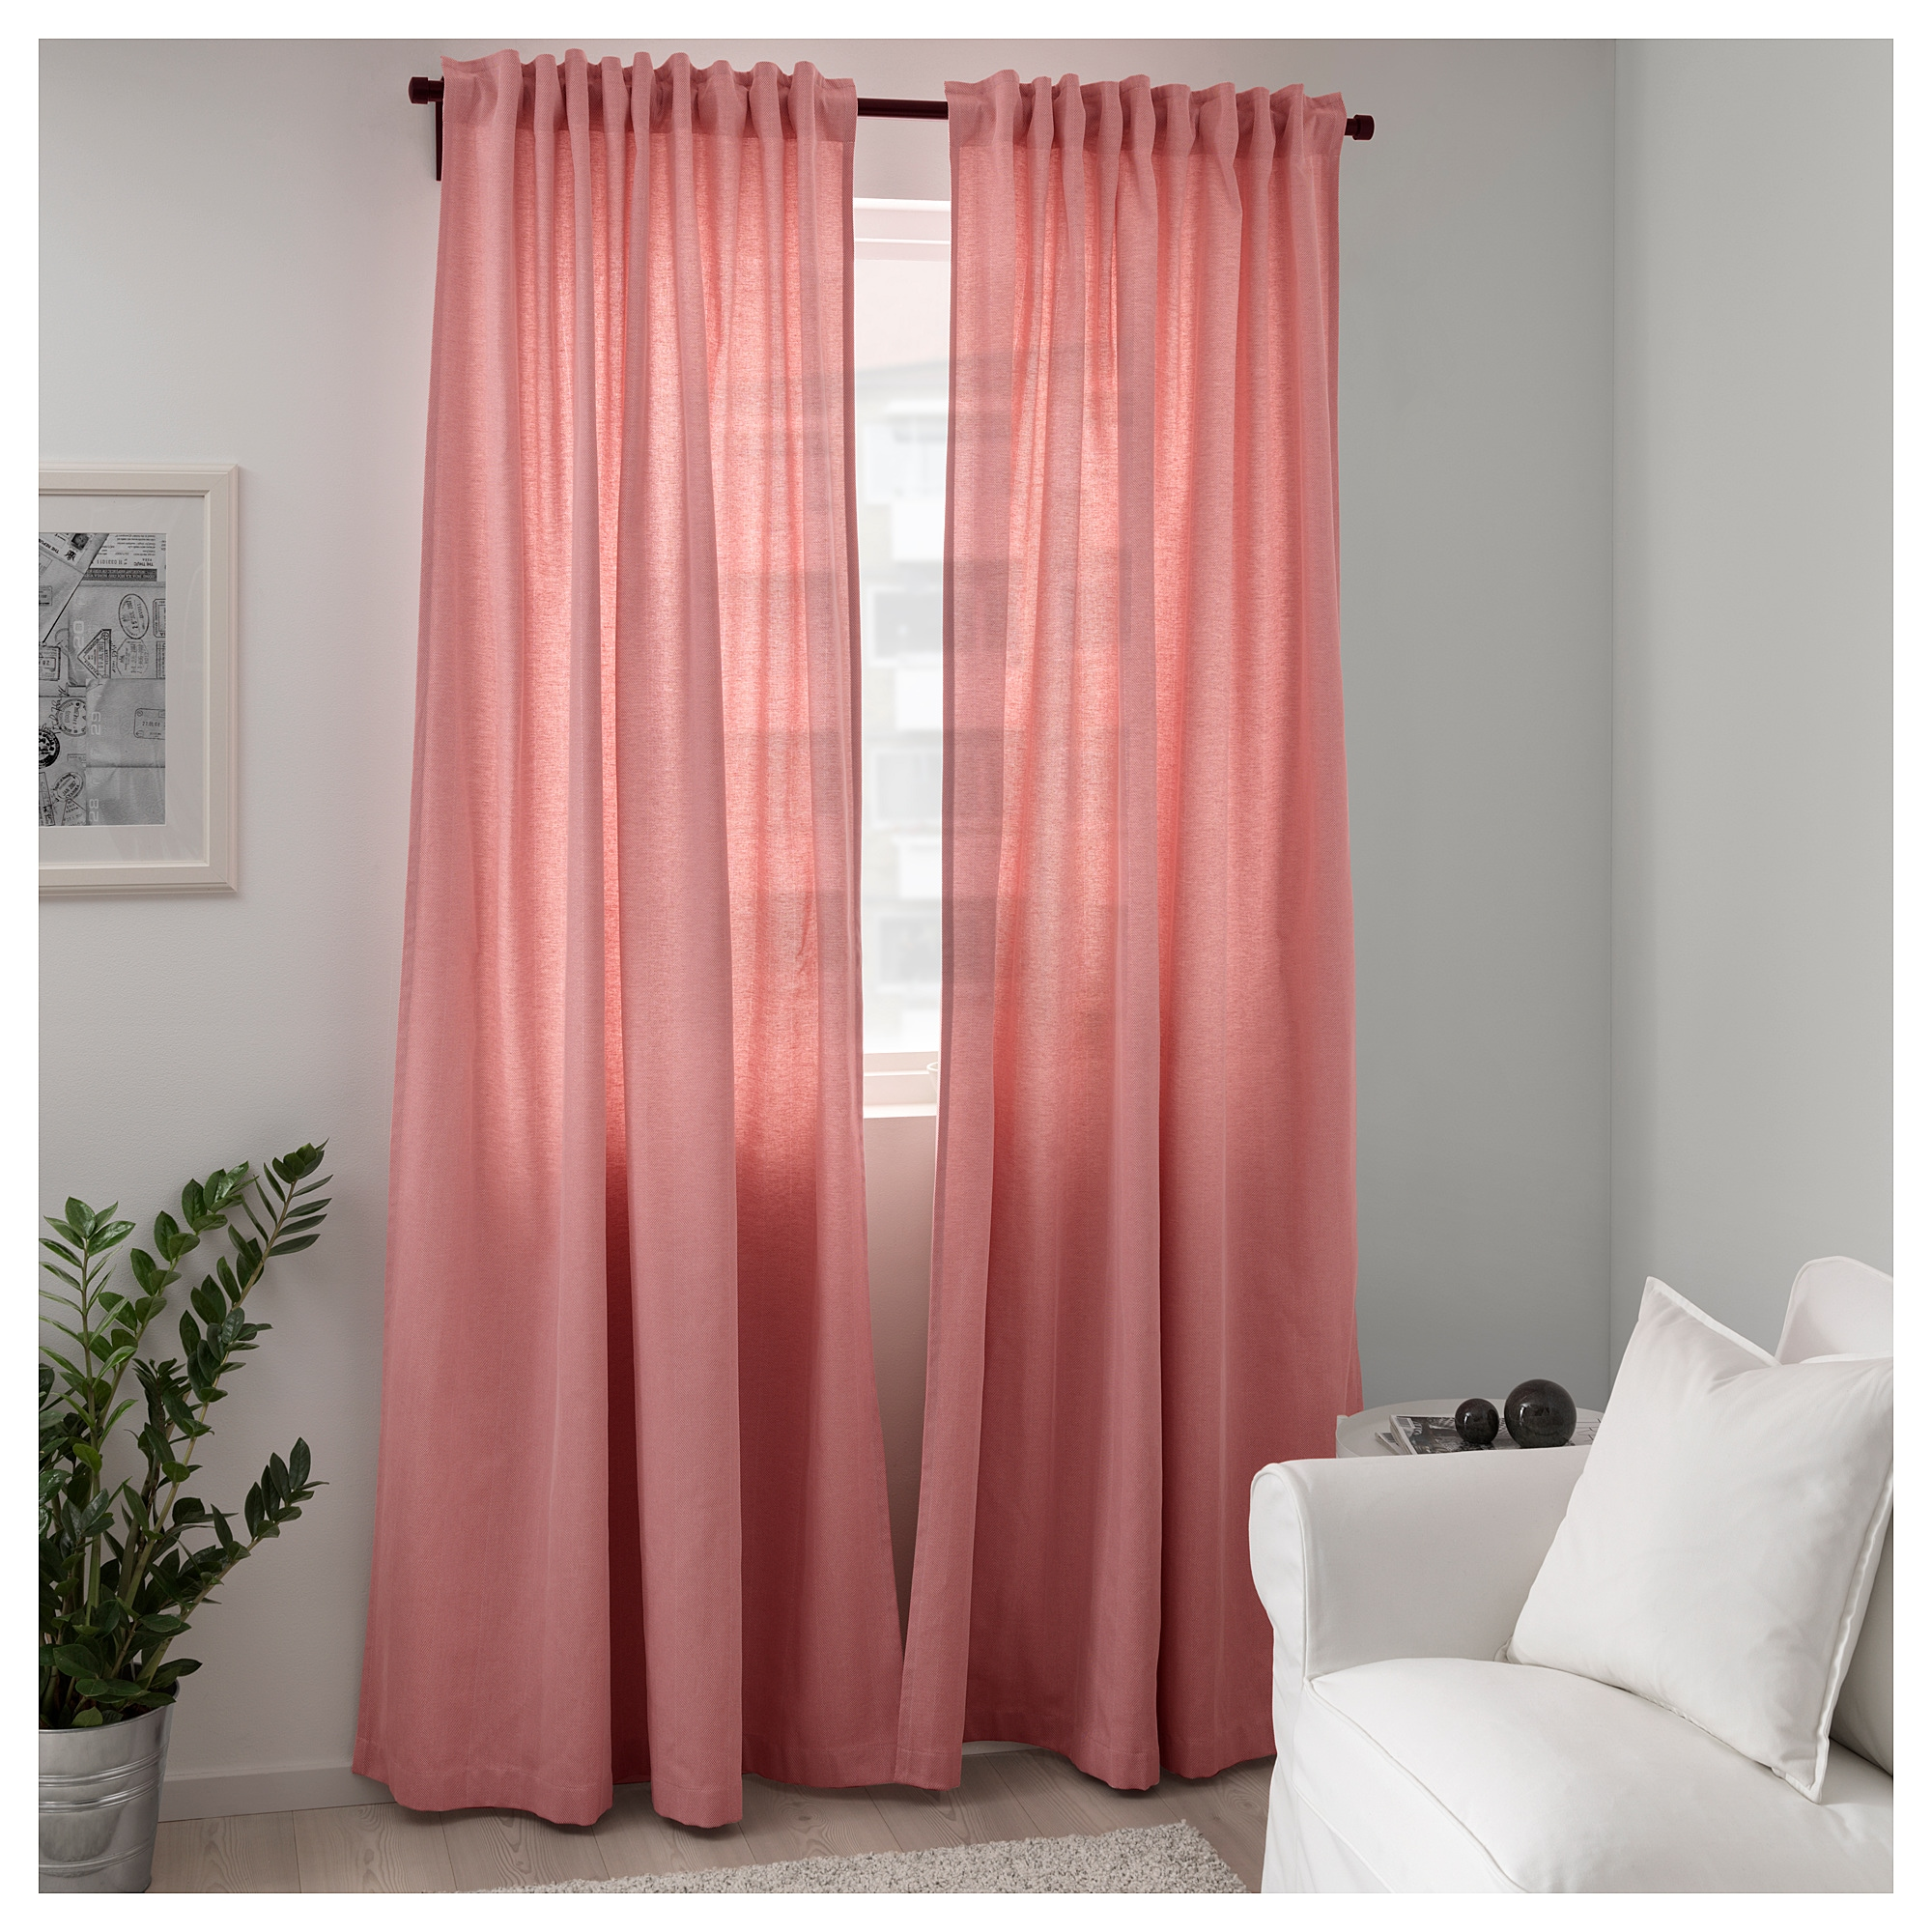 TIBAST Curtains 1 Pair